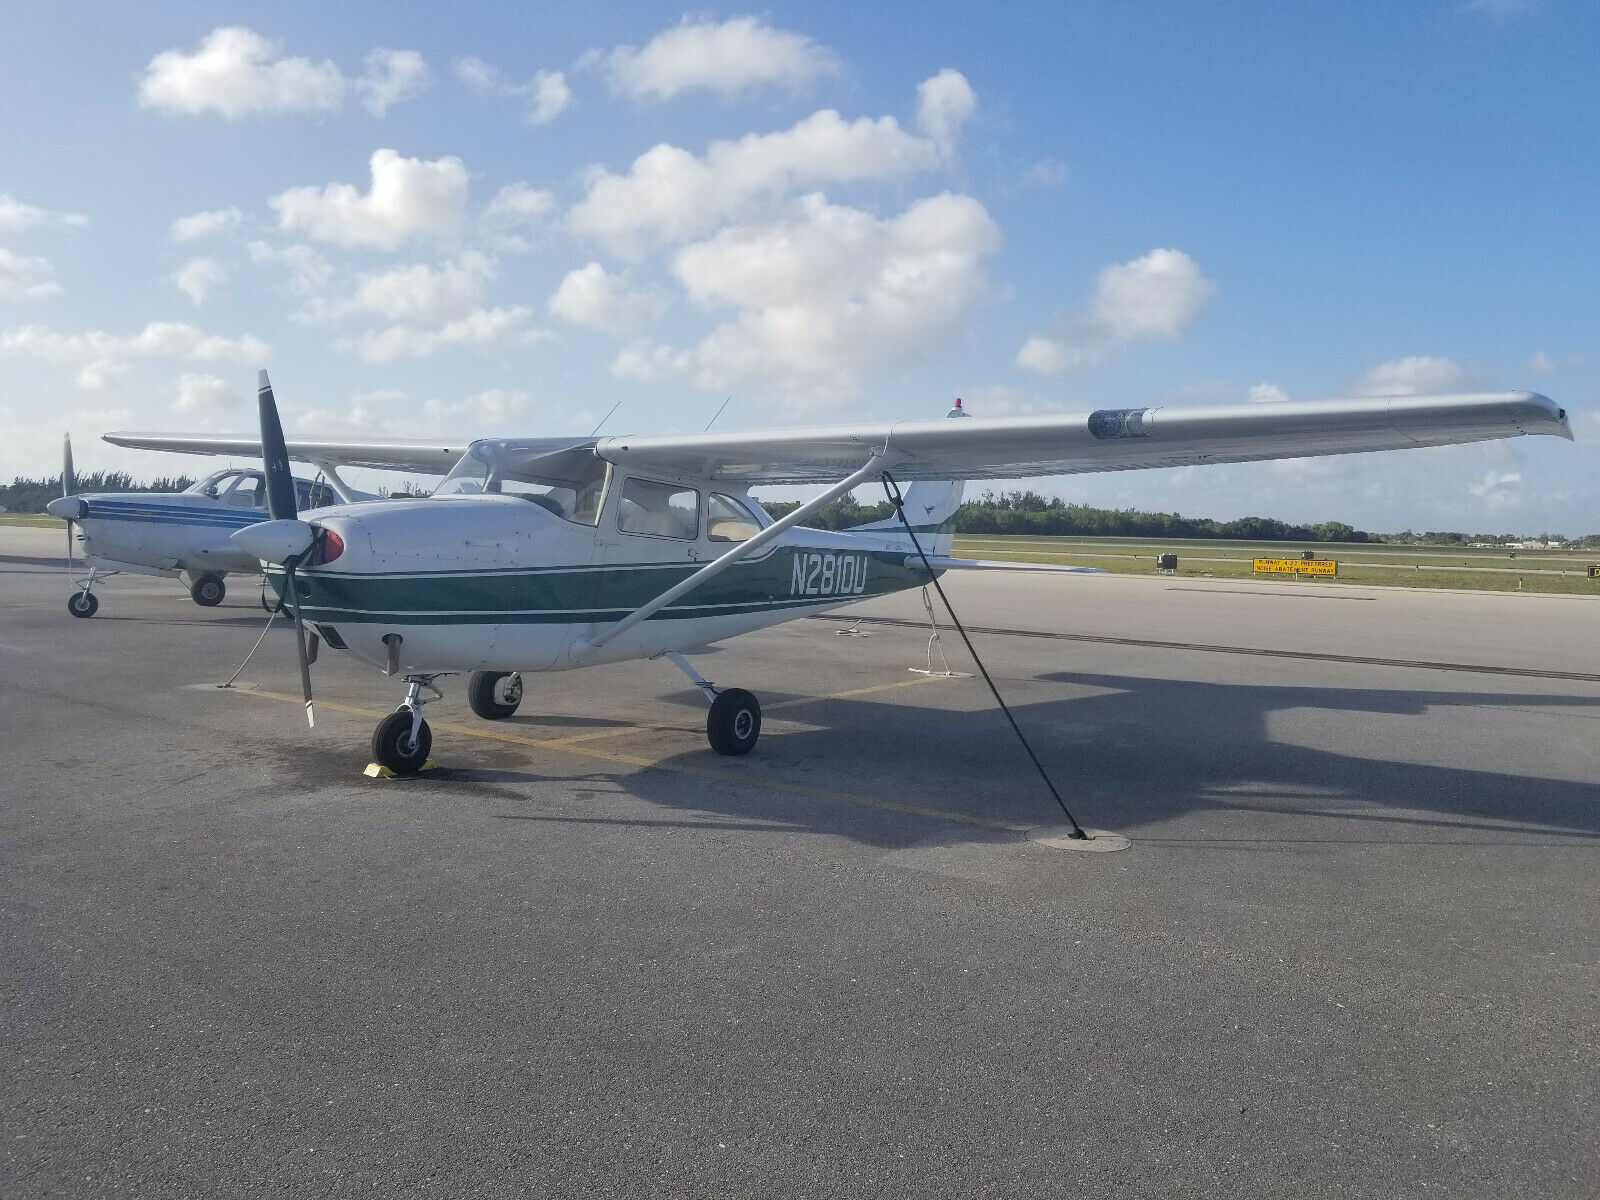 Clean 1963 Cessna Skyhawk aircraft for sale